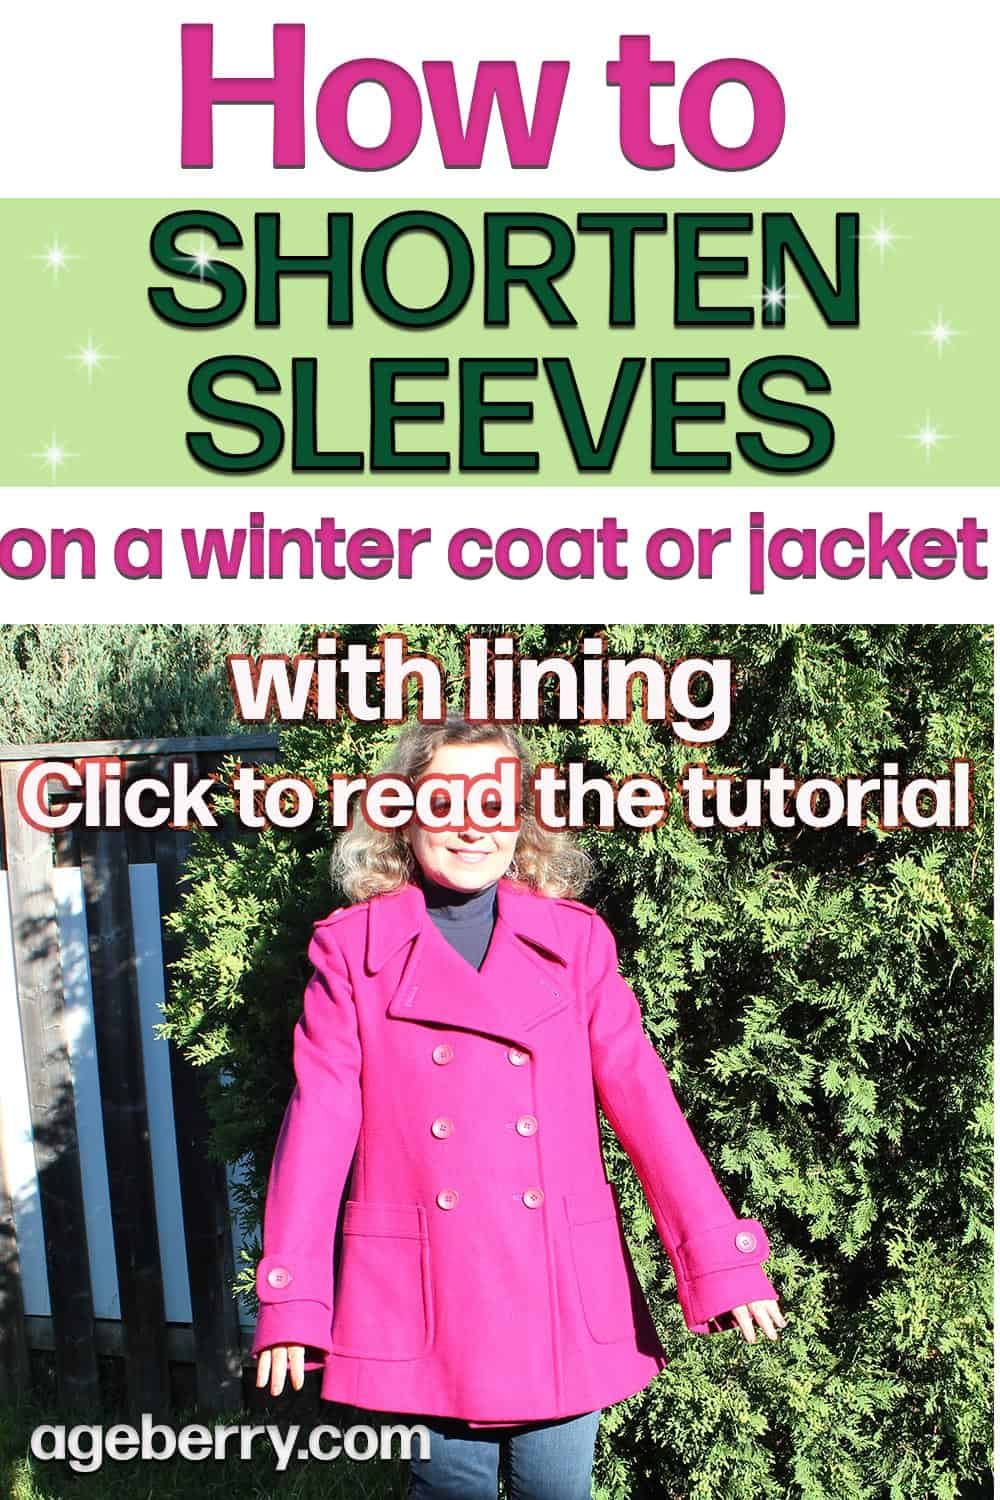 Sewing tutorial on how to sorten sleeves on a winter coat or jacket with lining